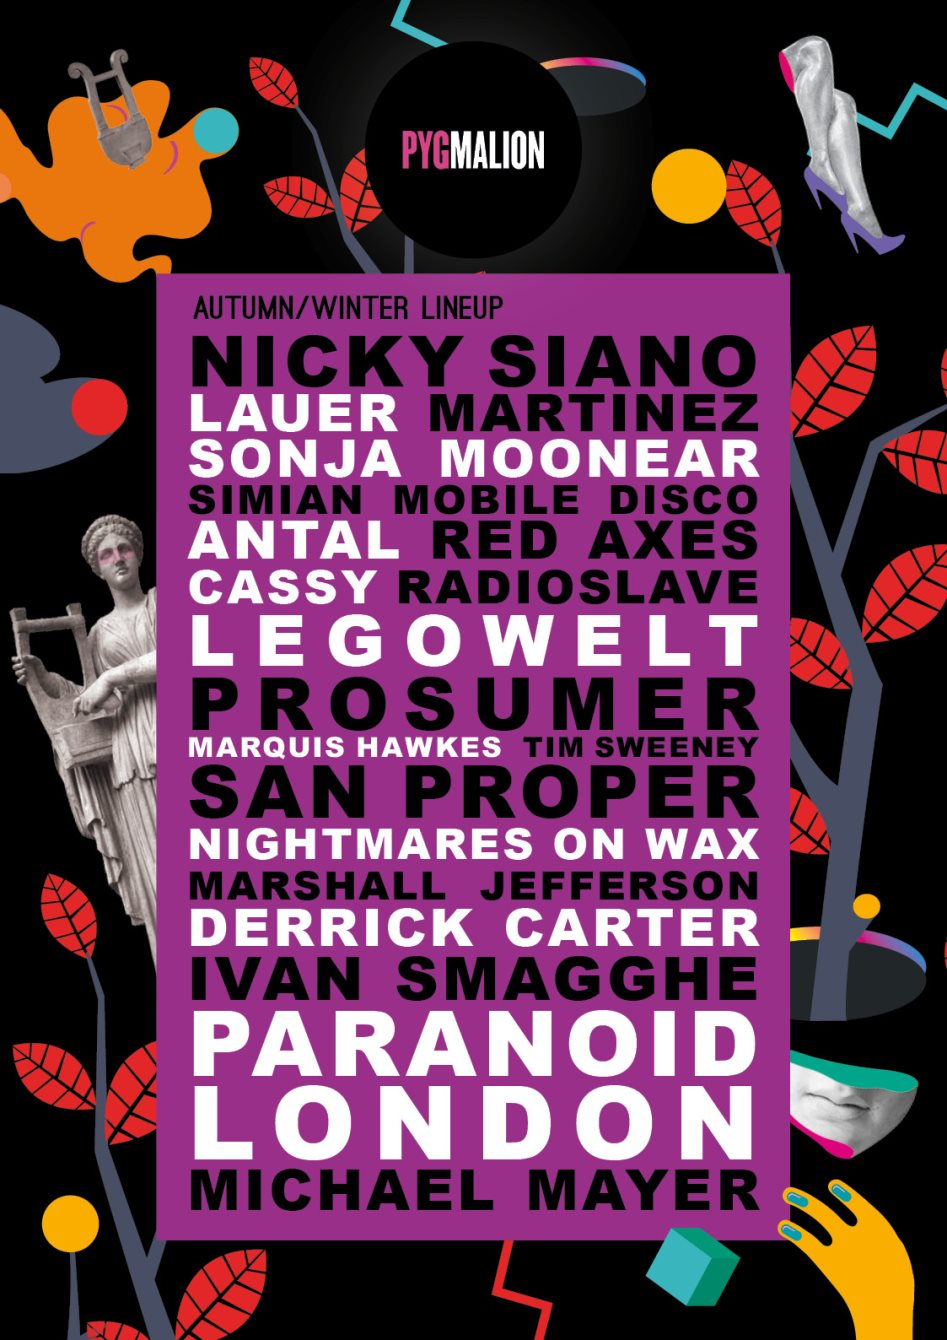 ra: halloween at powerscourt with nightmares on wax, marshall